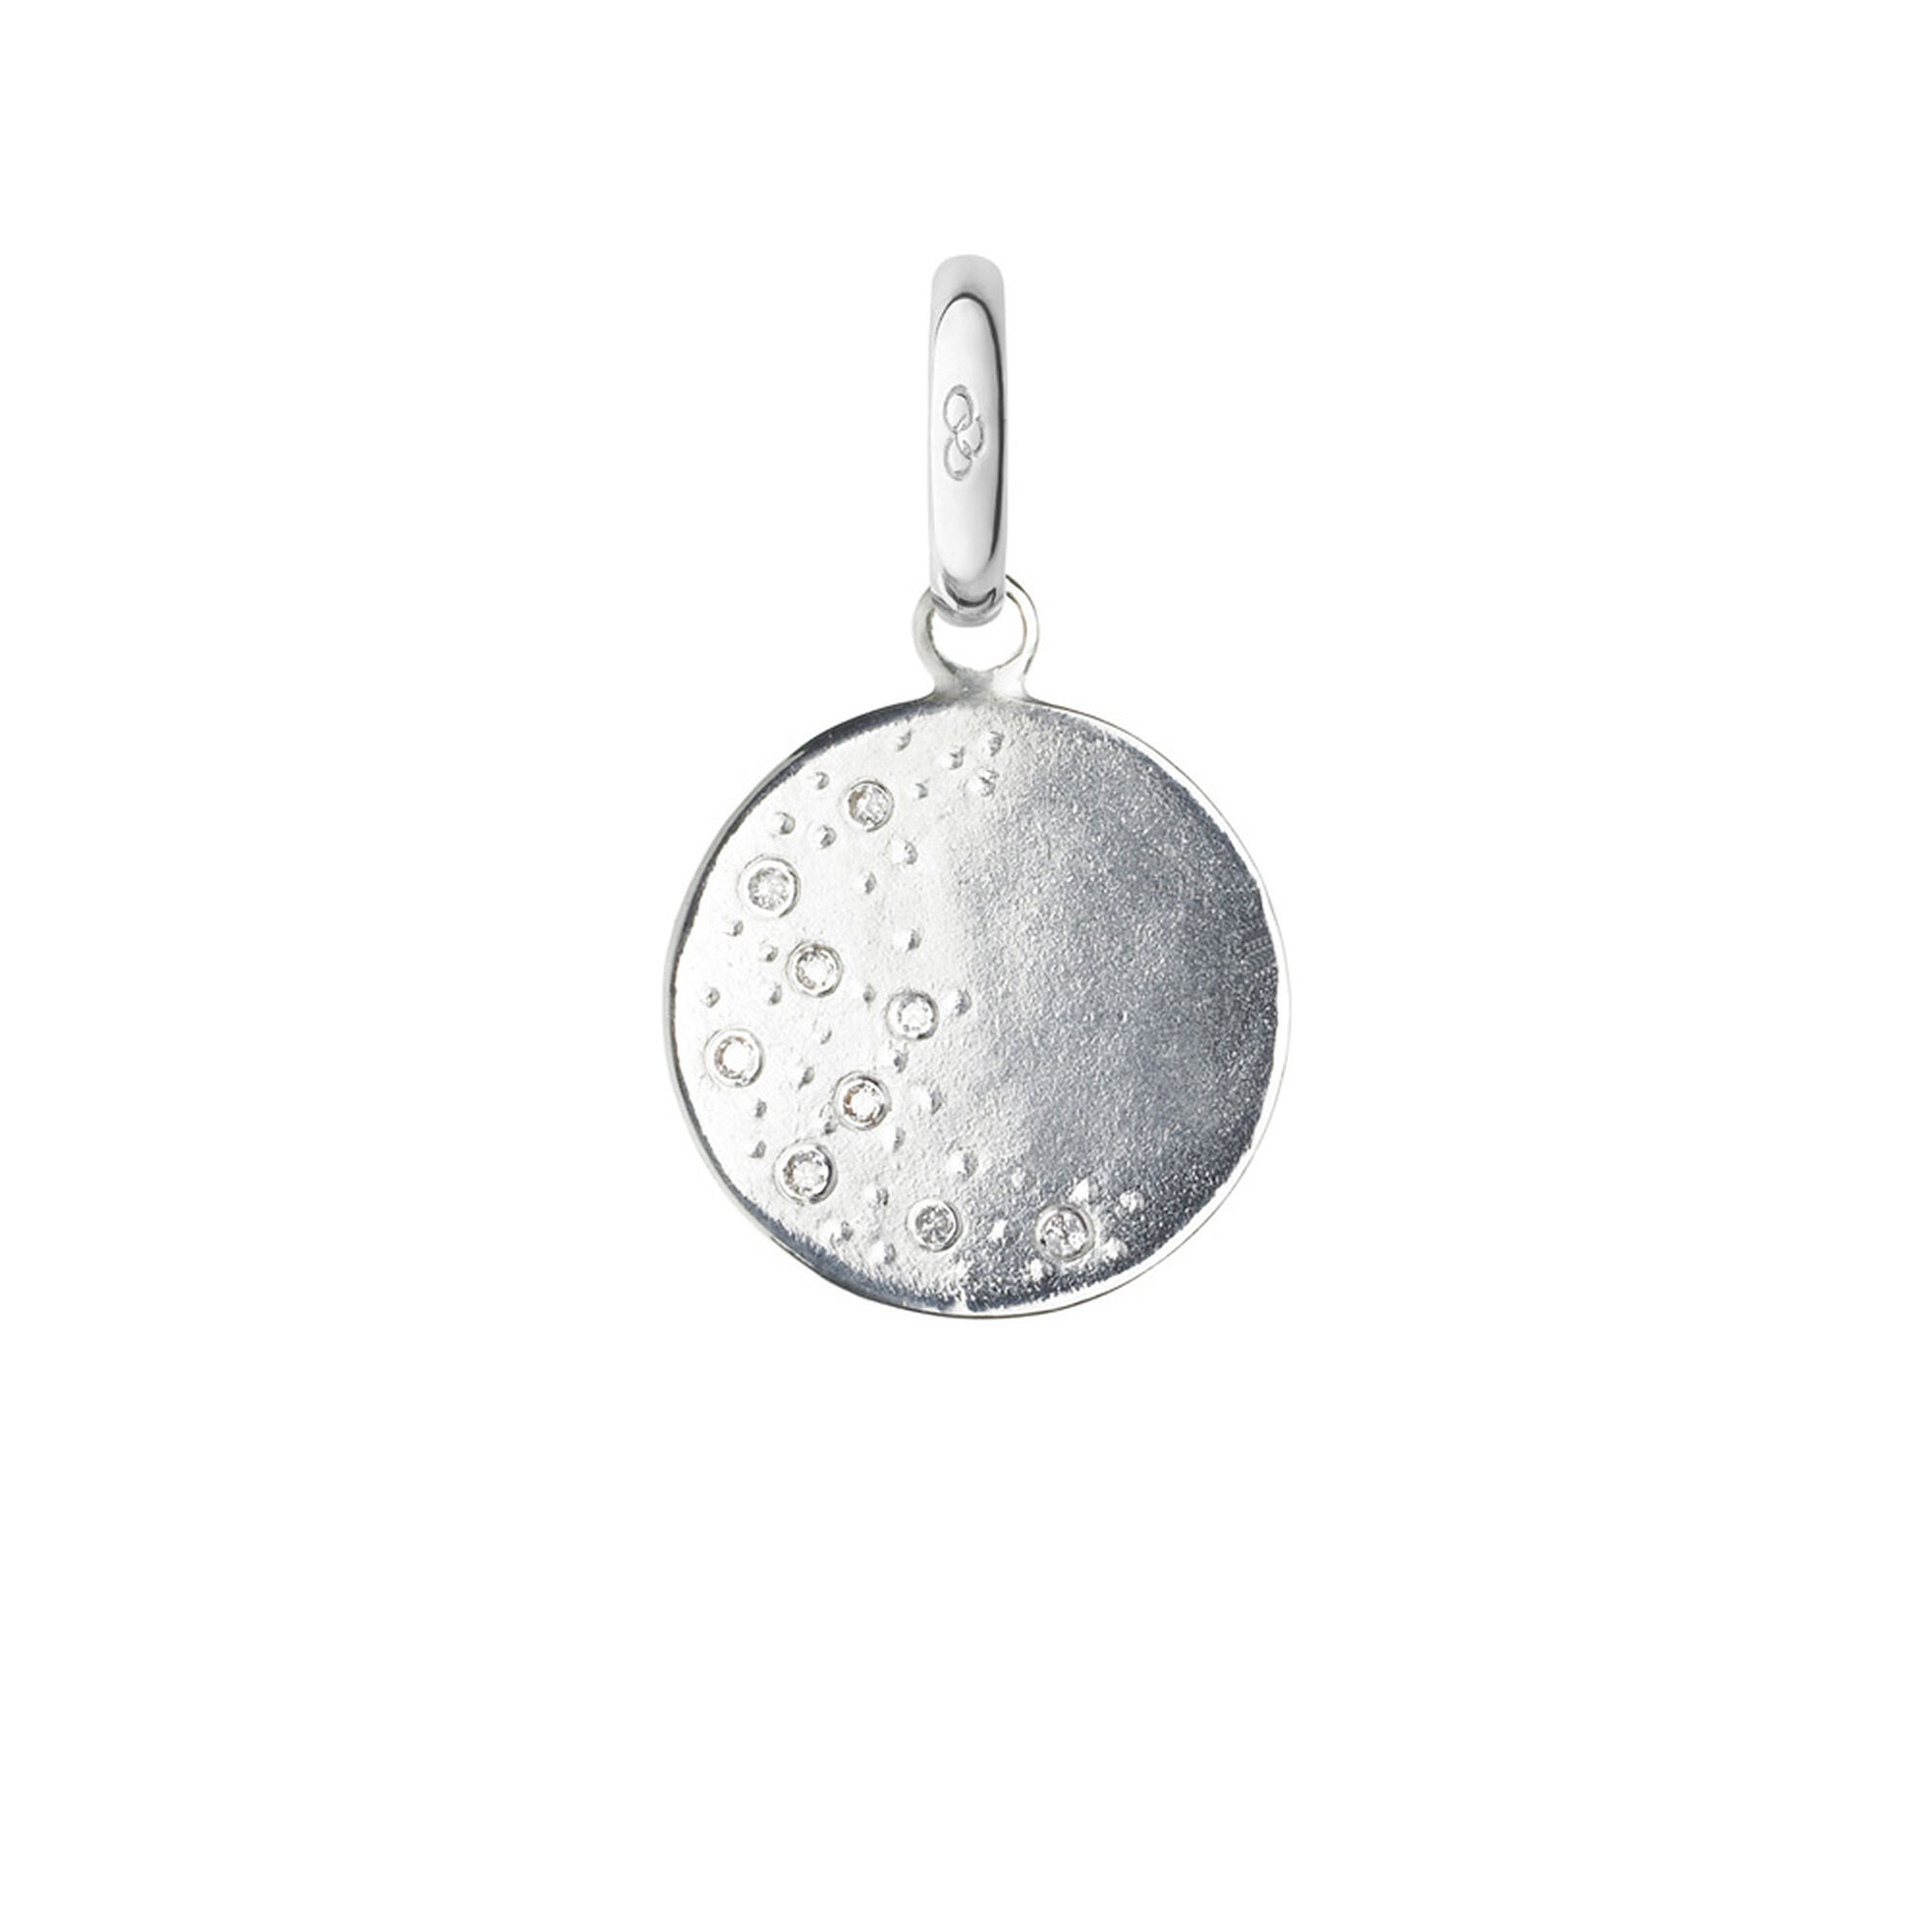 Watch over me silver diamond moon charm links of london links watch over me sterling silver amp diamond moon charm hires aloadofball Image collections